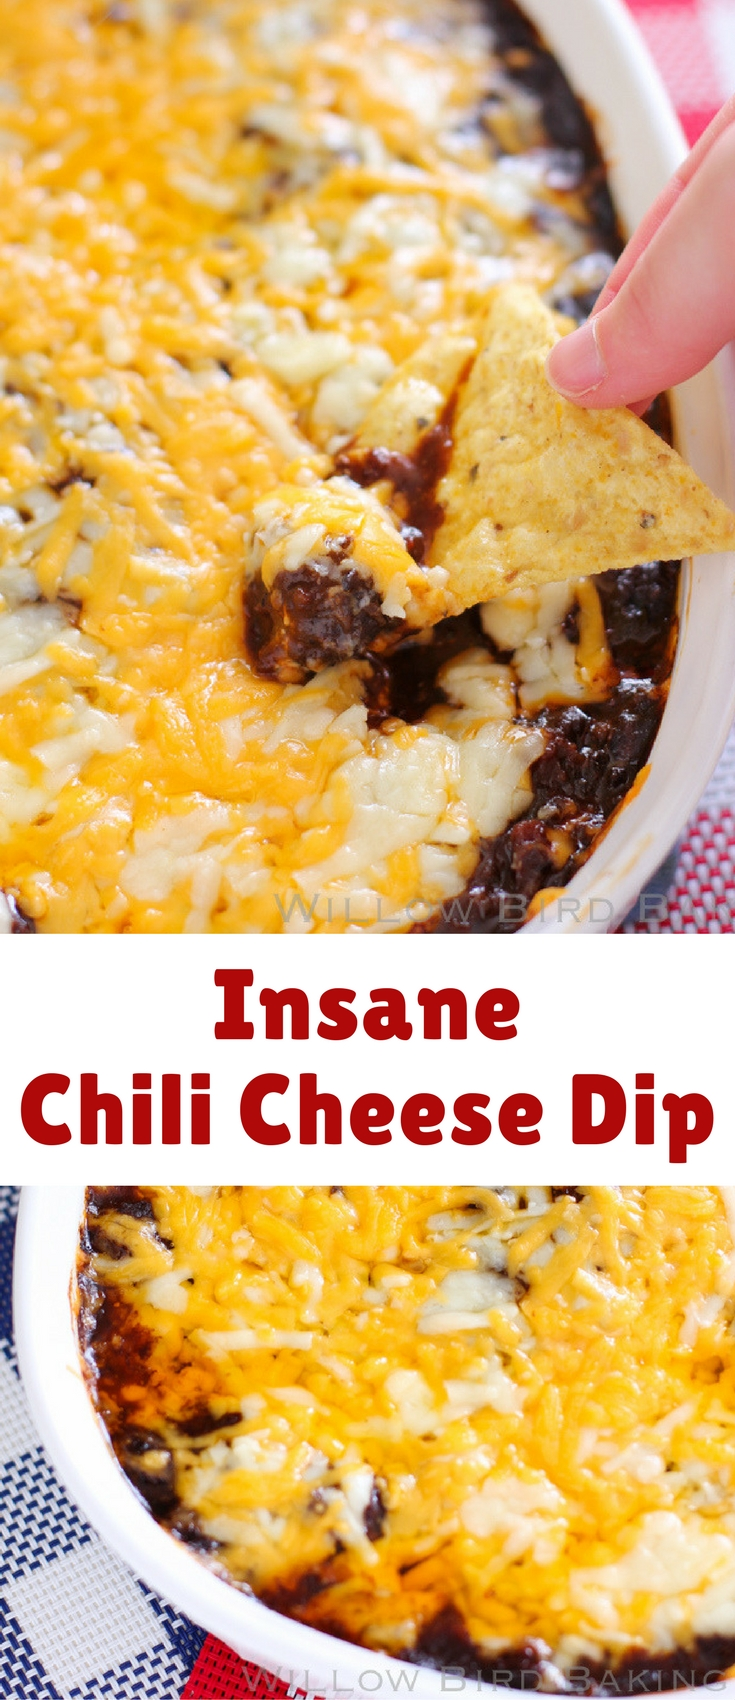 "Want some chili cheese dip to ""encourage"" your husband or wife to run errands? I got ya covered. This dip was a family favorite when I was little. We used a can of Hormel chili without beans and it took around 15 minutes to whip up — perfect for an emergency last minute dip on game day!"